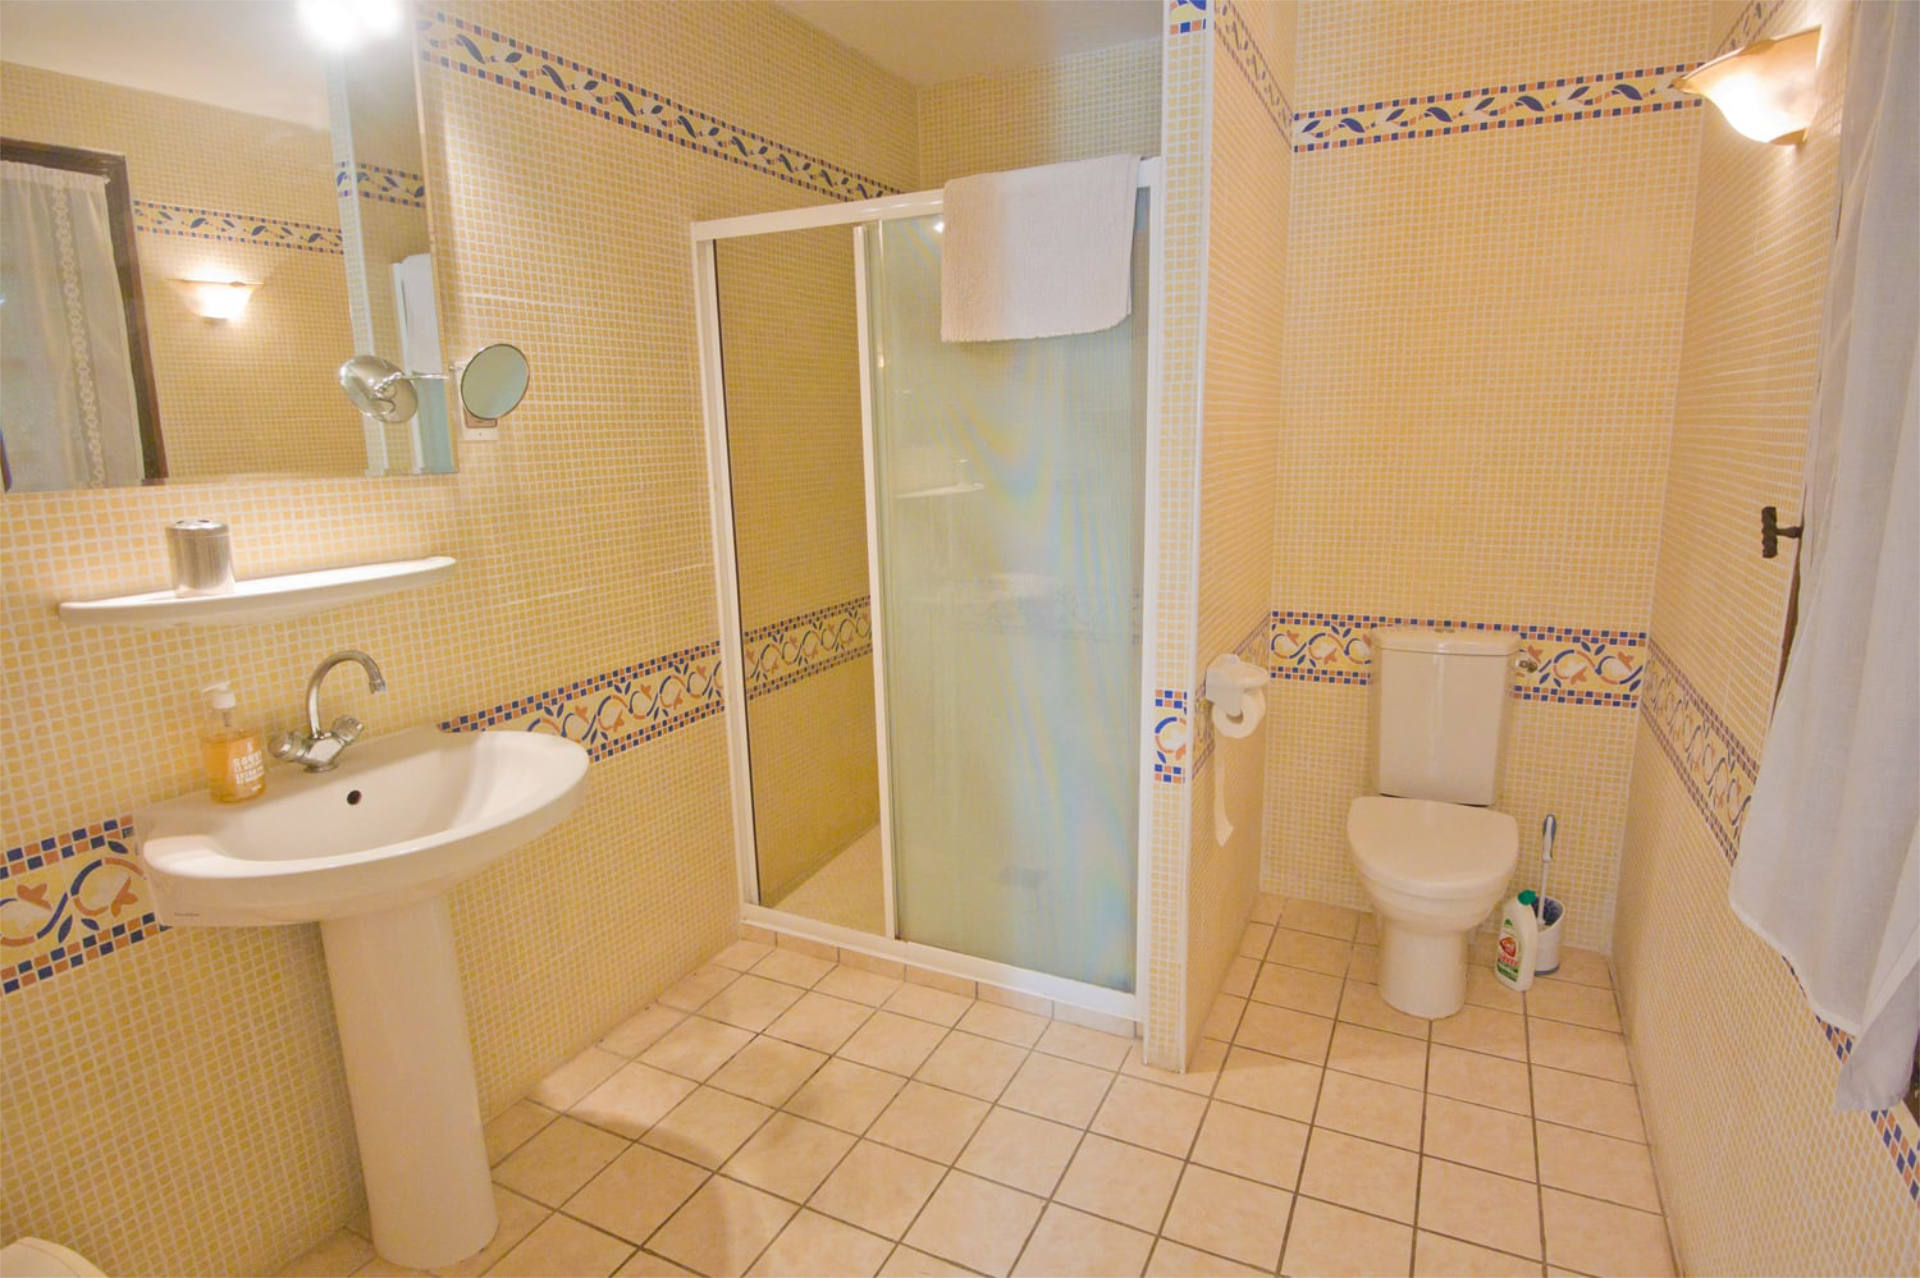 Bathroom with walk in shower, toilet and sink.